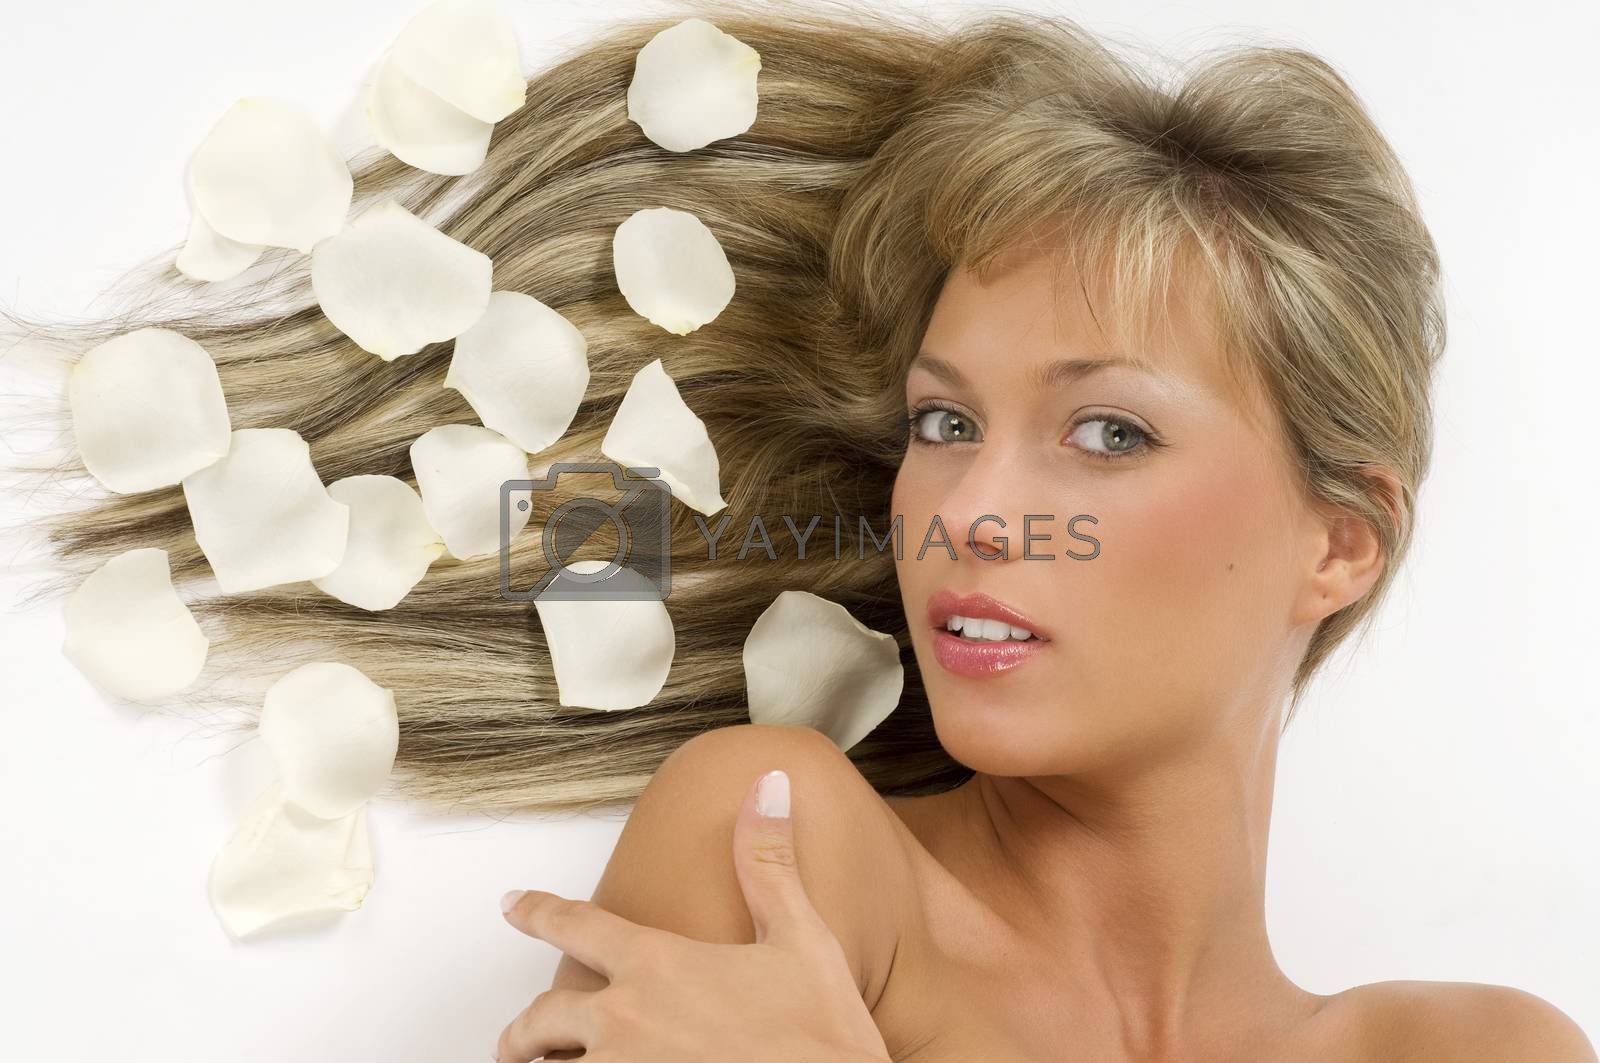 Royalty free image of blond girl petals by fotoCD